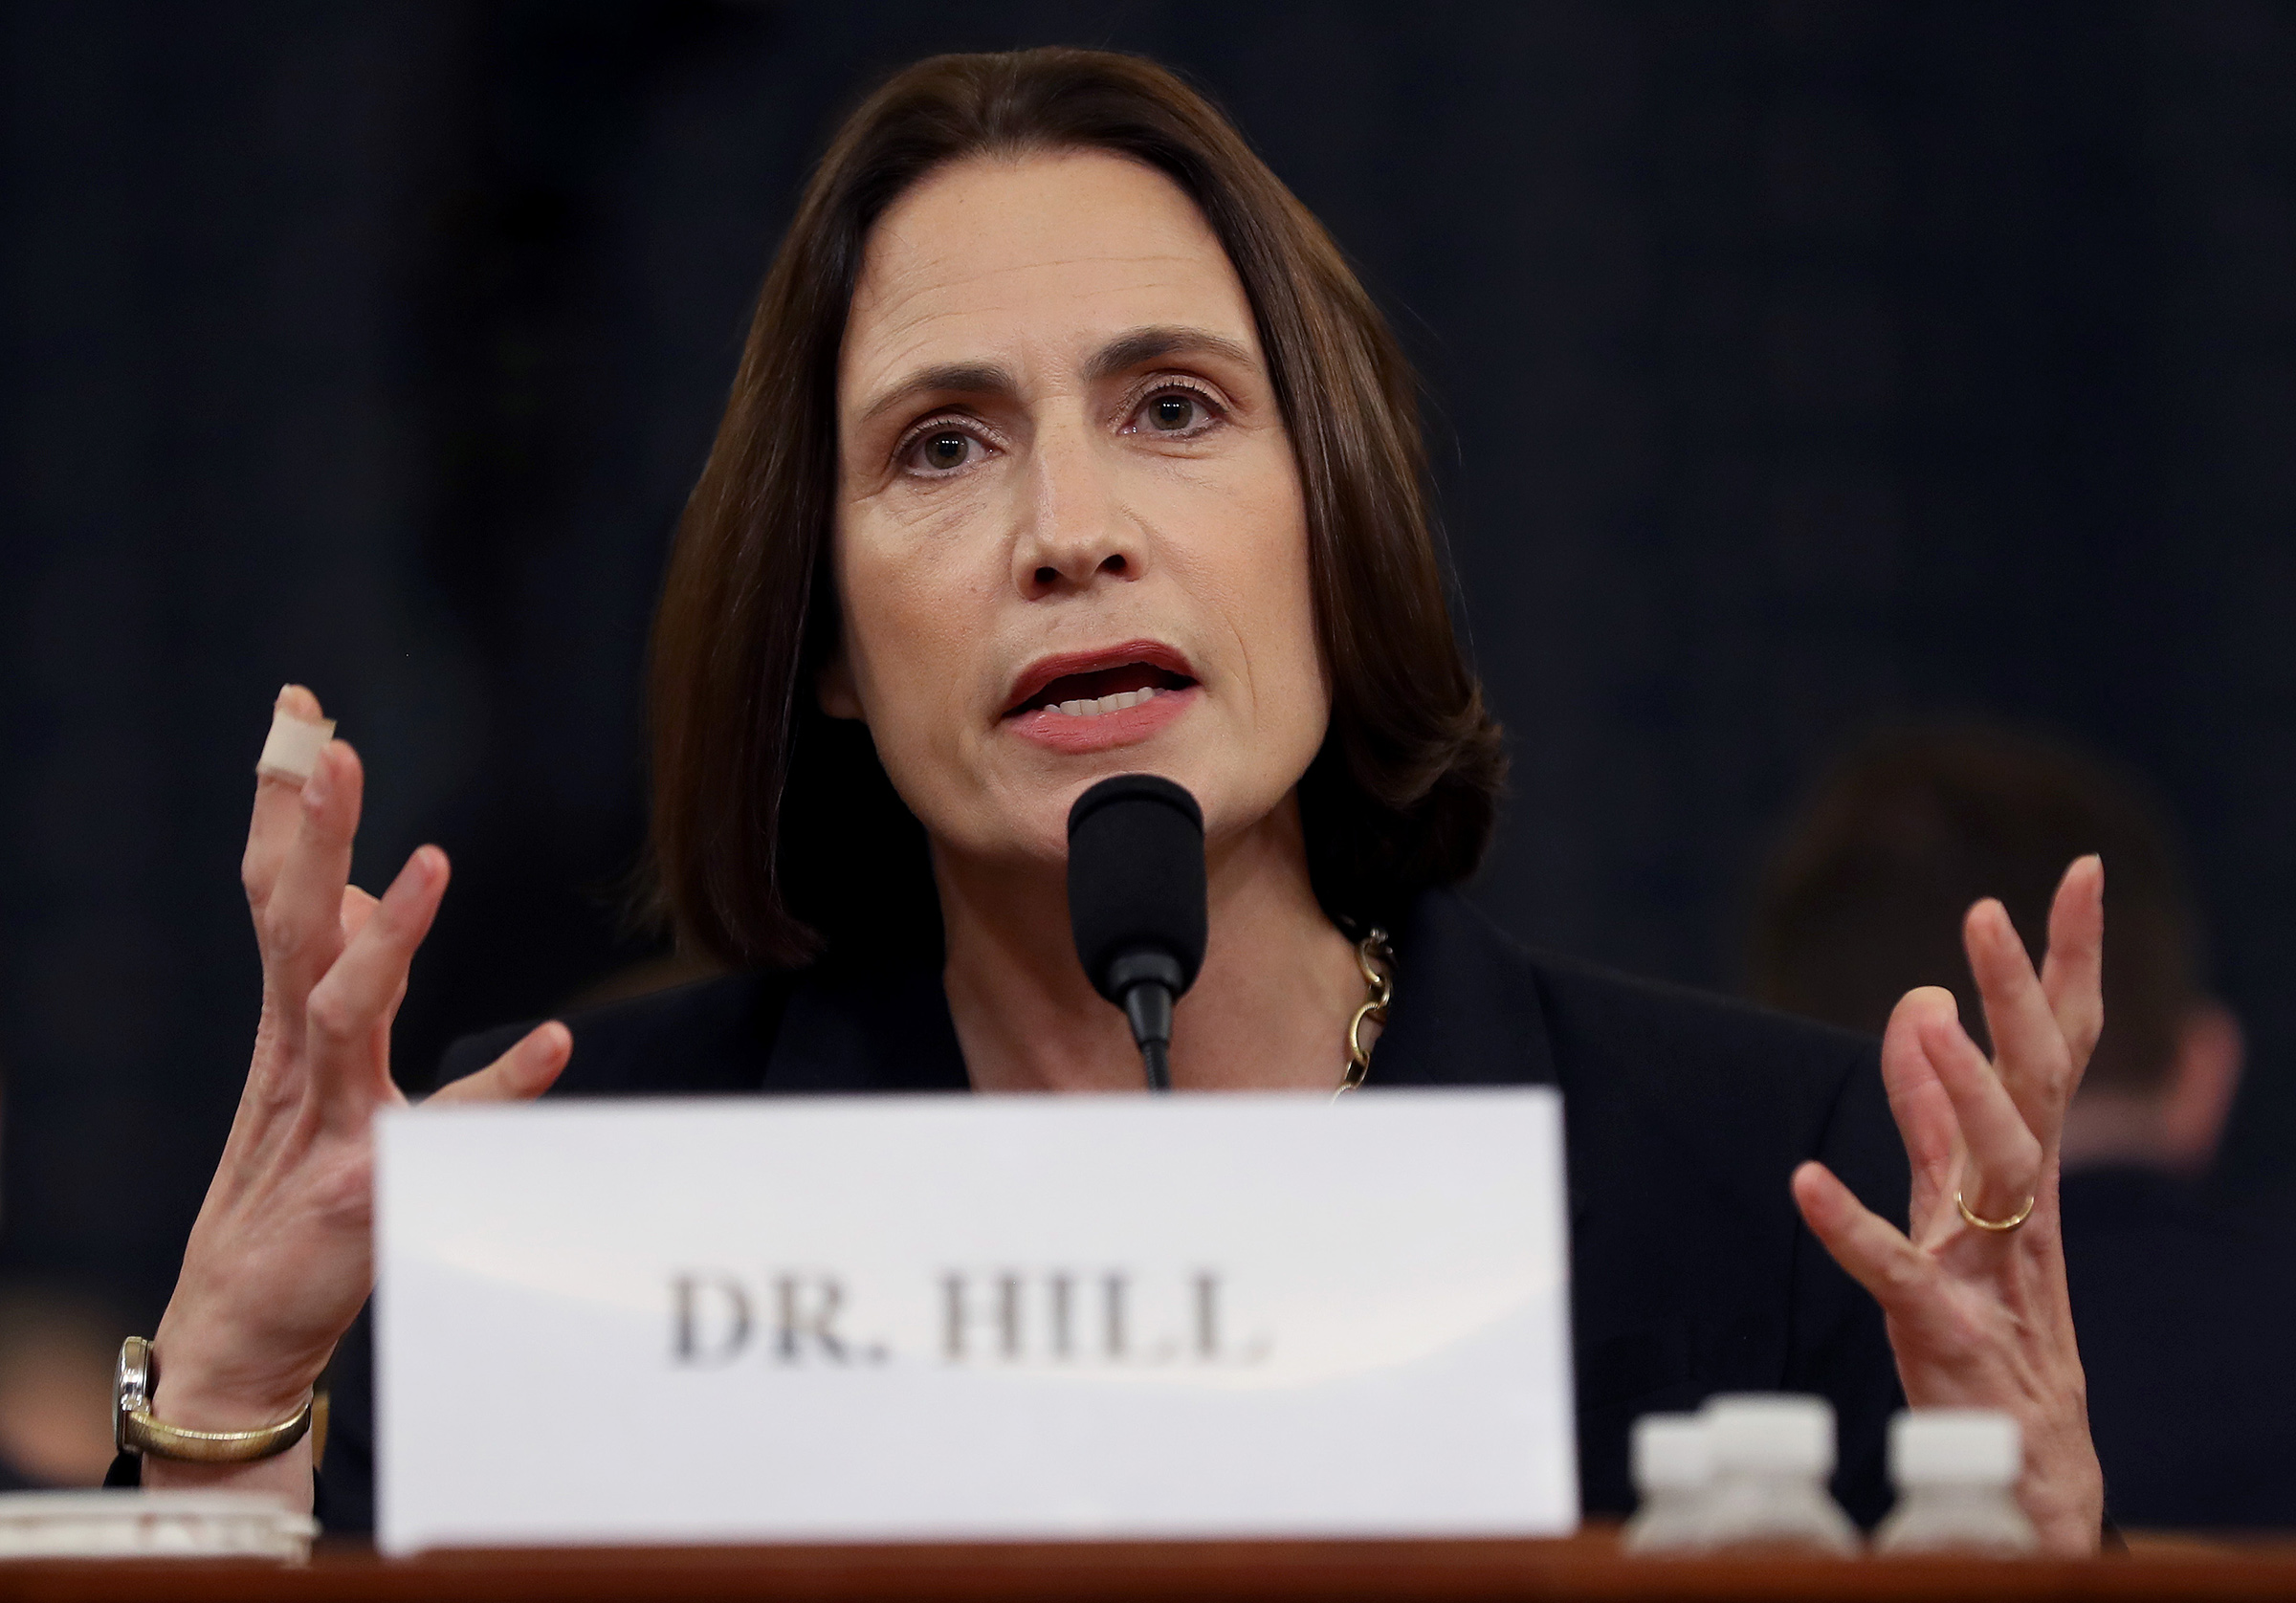 Fiona Hill, the National Security Council's former senior director for Europe and Russia testifies before the House Intelligence Committee on Capitol Hill on Nov. 21, 2019 in Washington, DC.